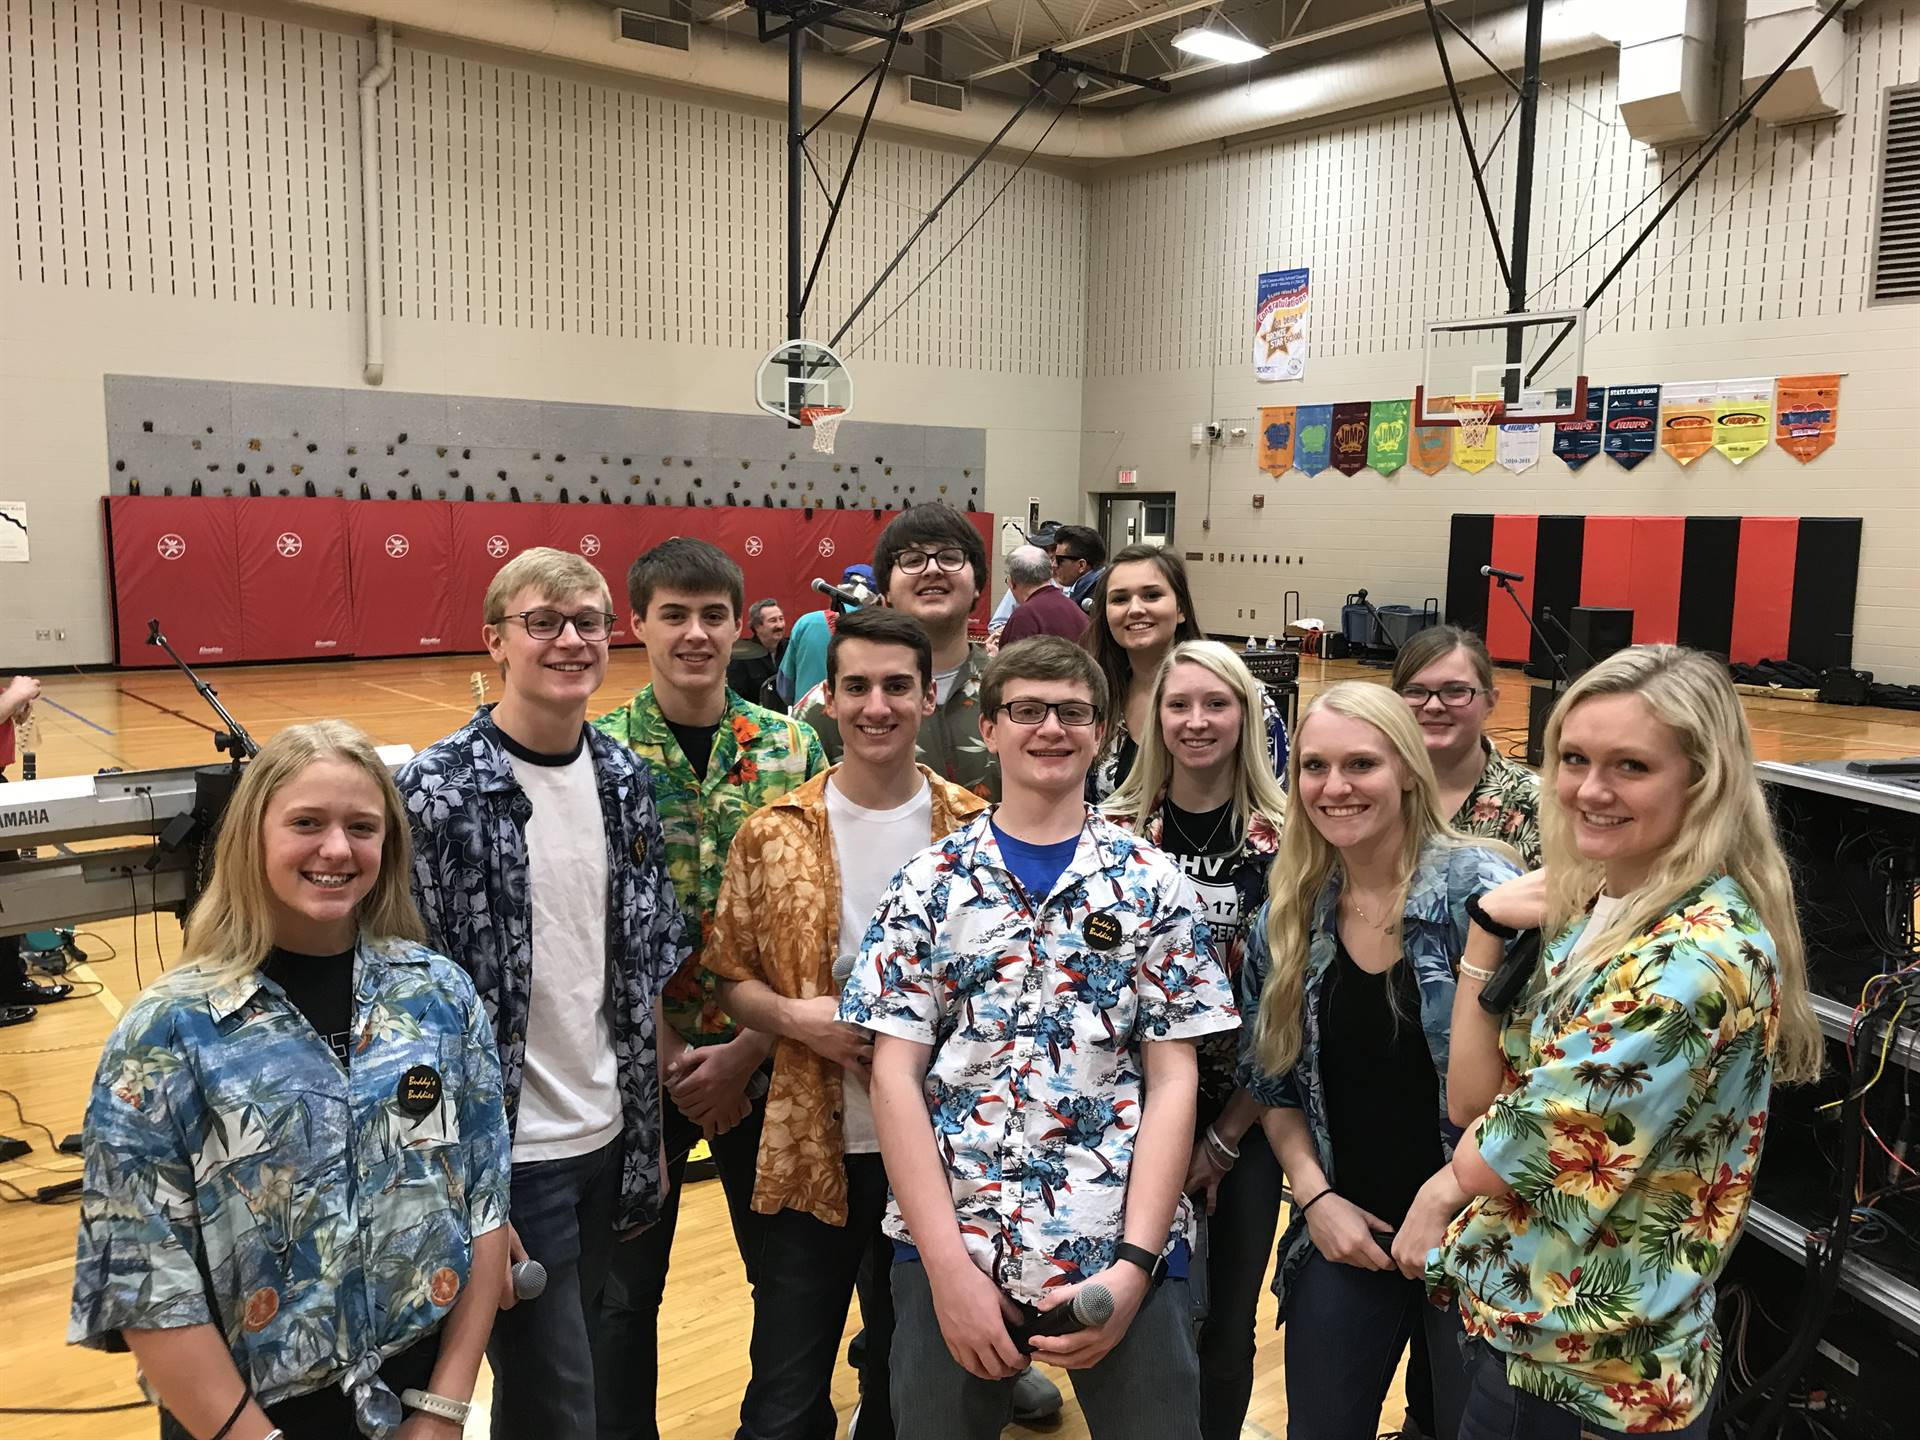 vocal jazz students dressed in tropical shirts